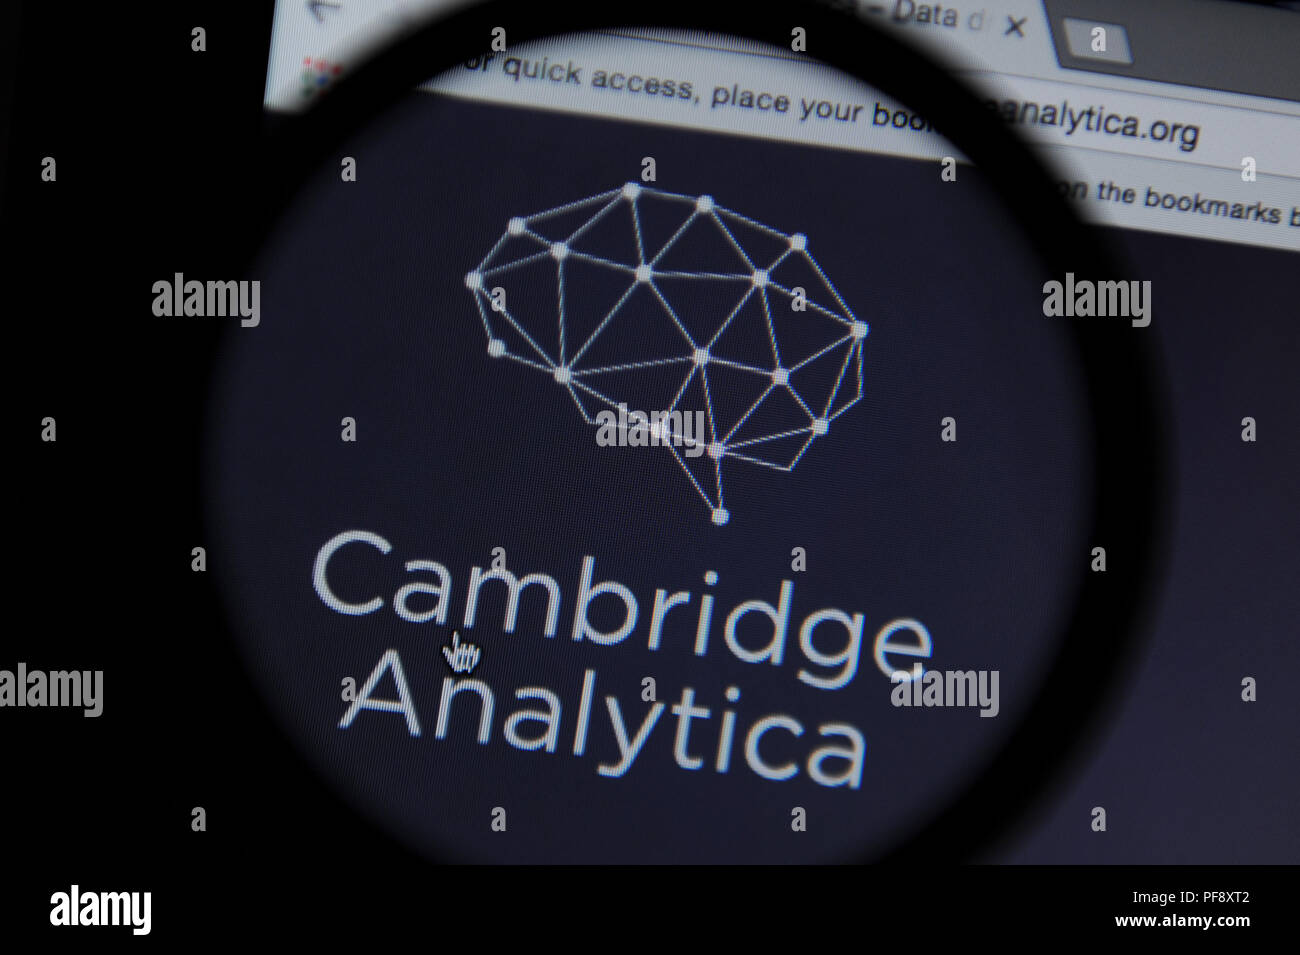 L'Analytica Cambridge internet site vu à travers une loupe Photo Stock